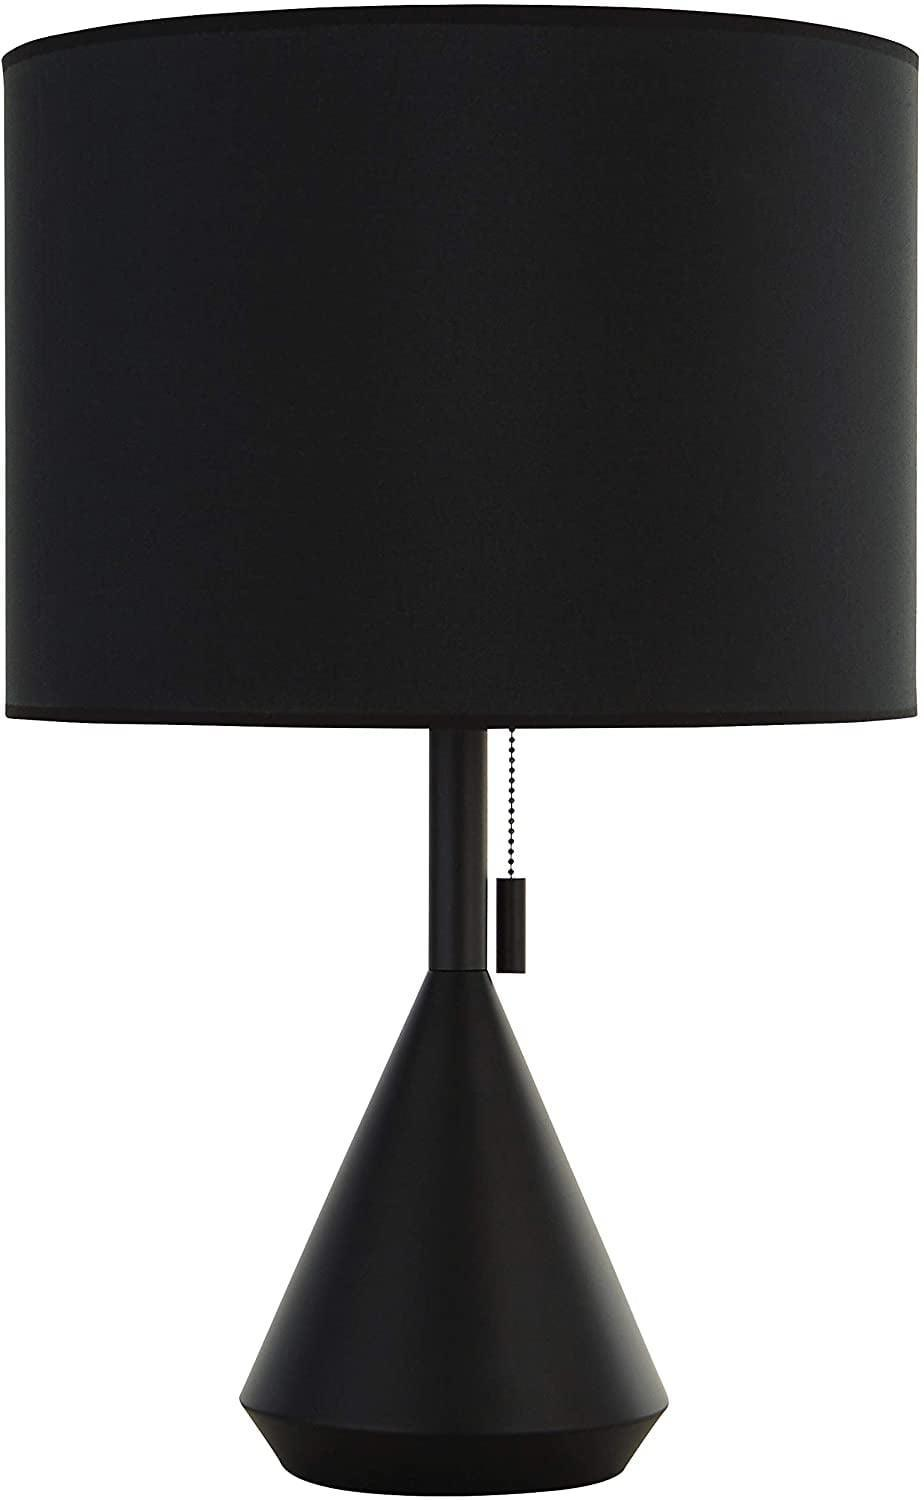 <p>This modern <span>Rivet Modern Pull-Chain Switch For Each Socket Table Lamp</span> ($74) looks so chic.</p>